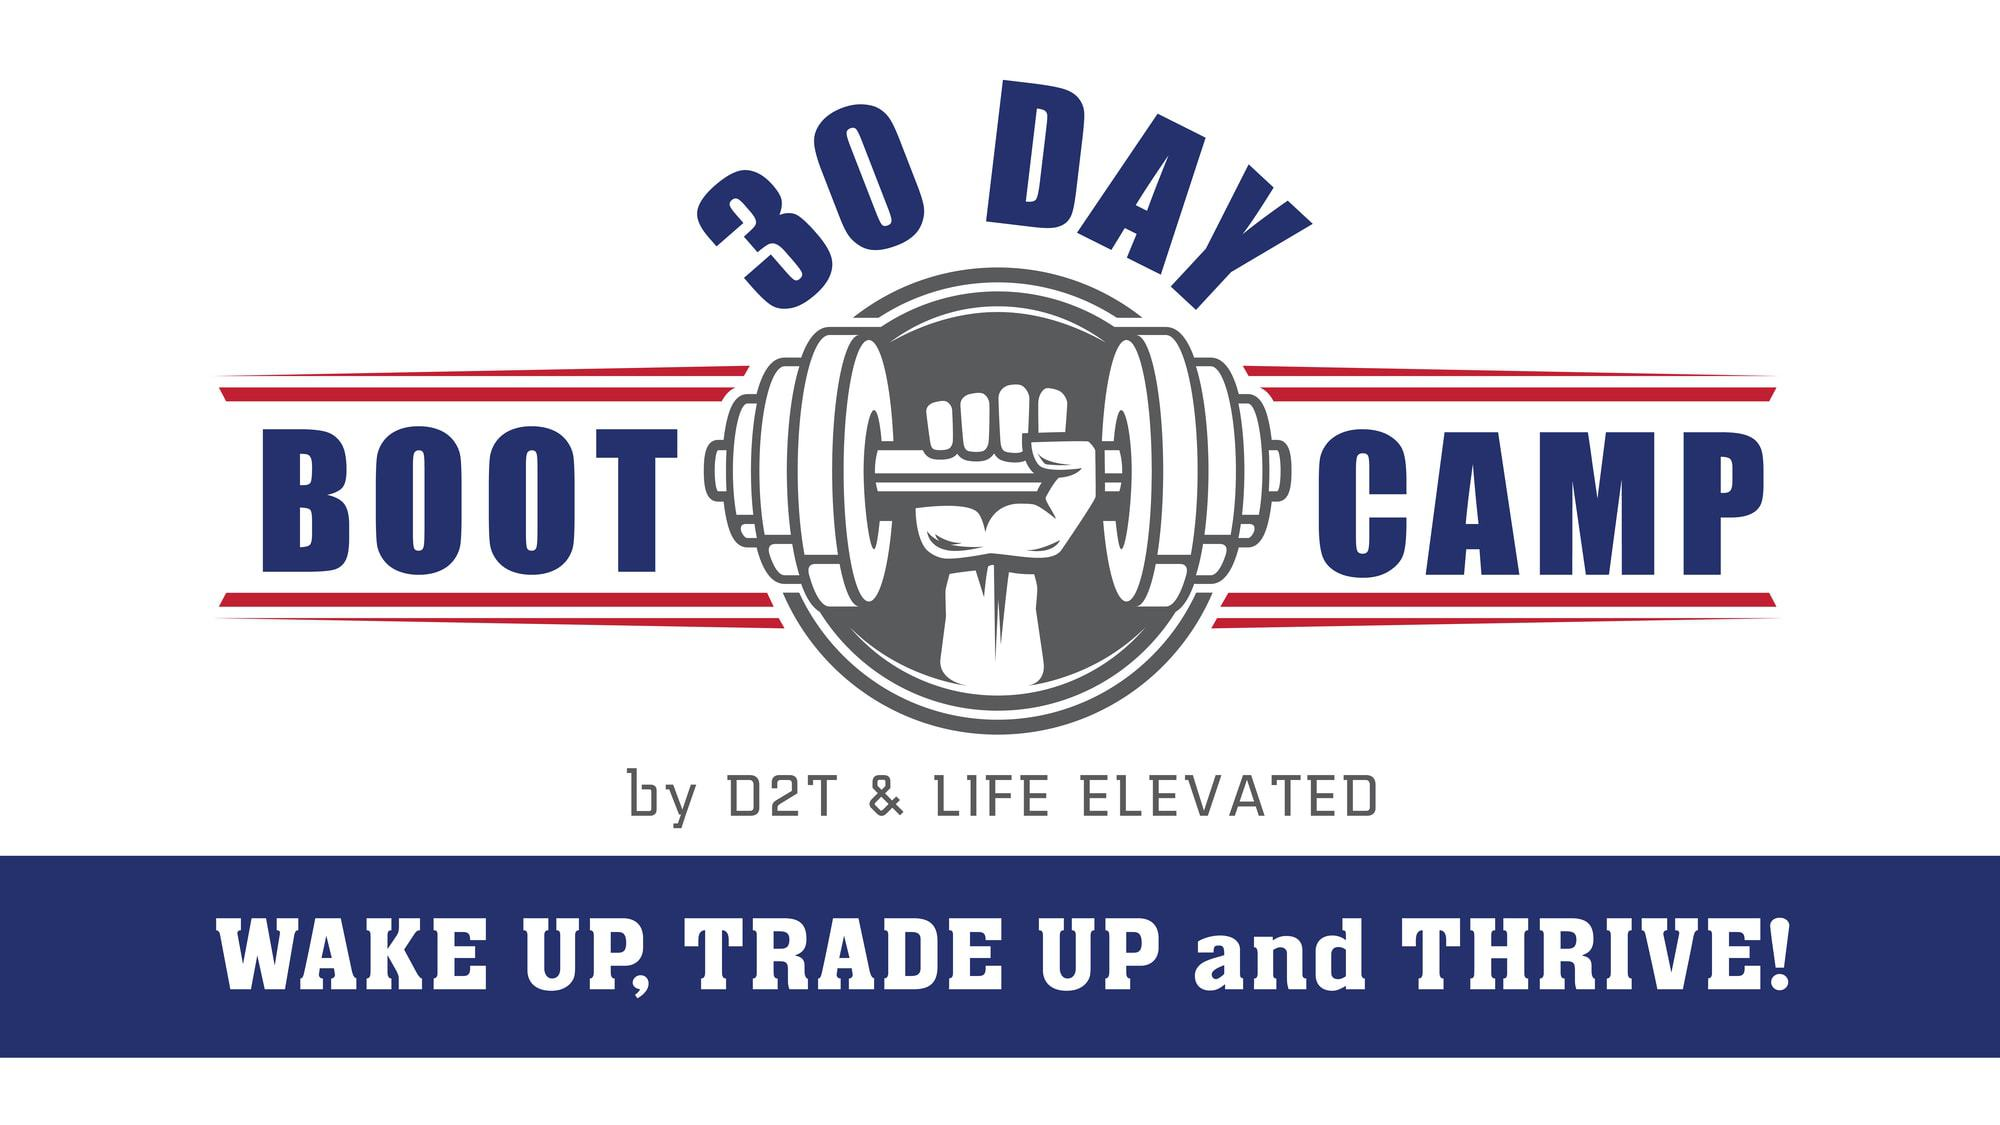 Starts soon! 30 Day ONLINE Health & Fitness Boot Camp